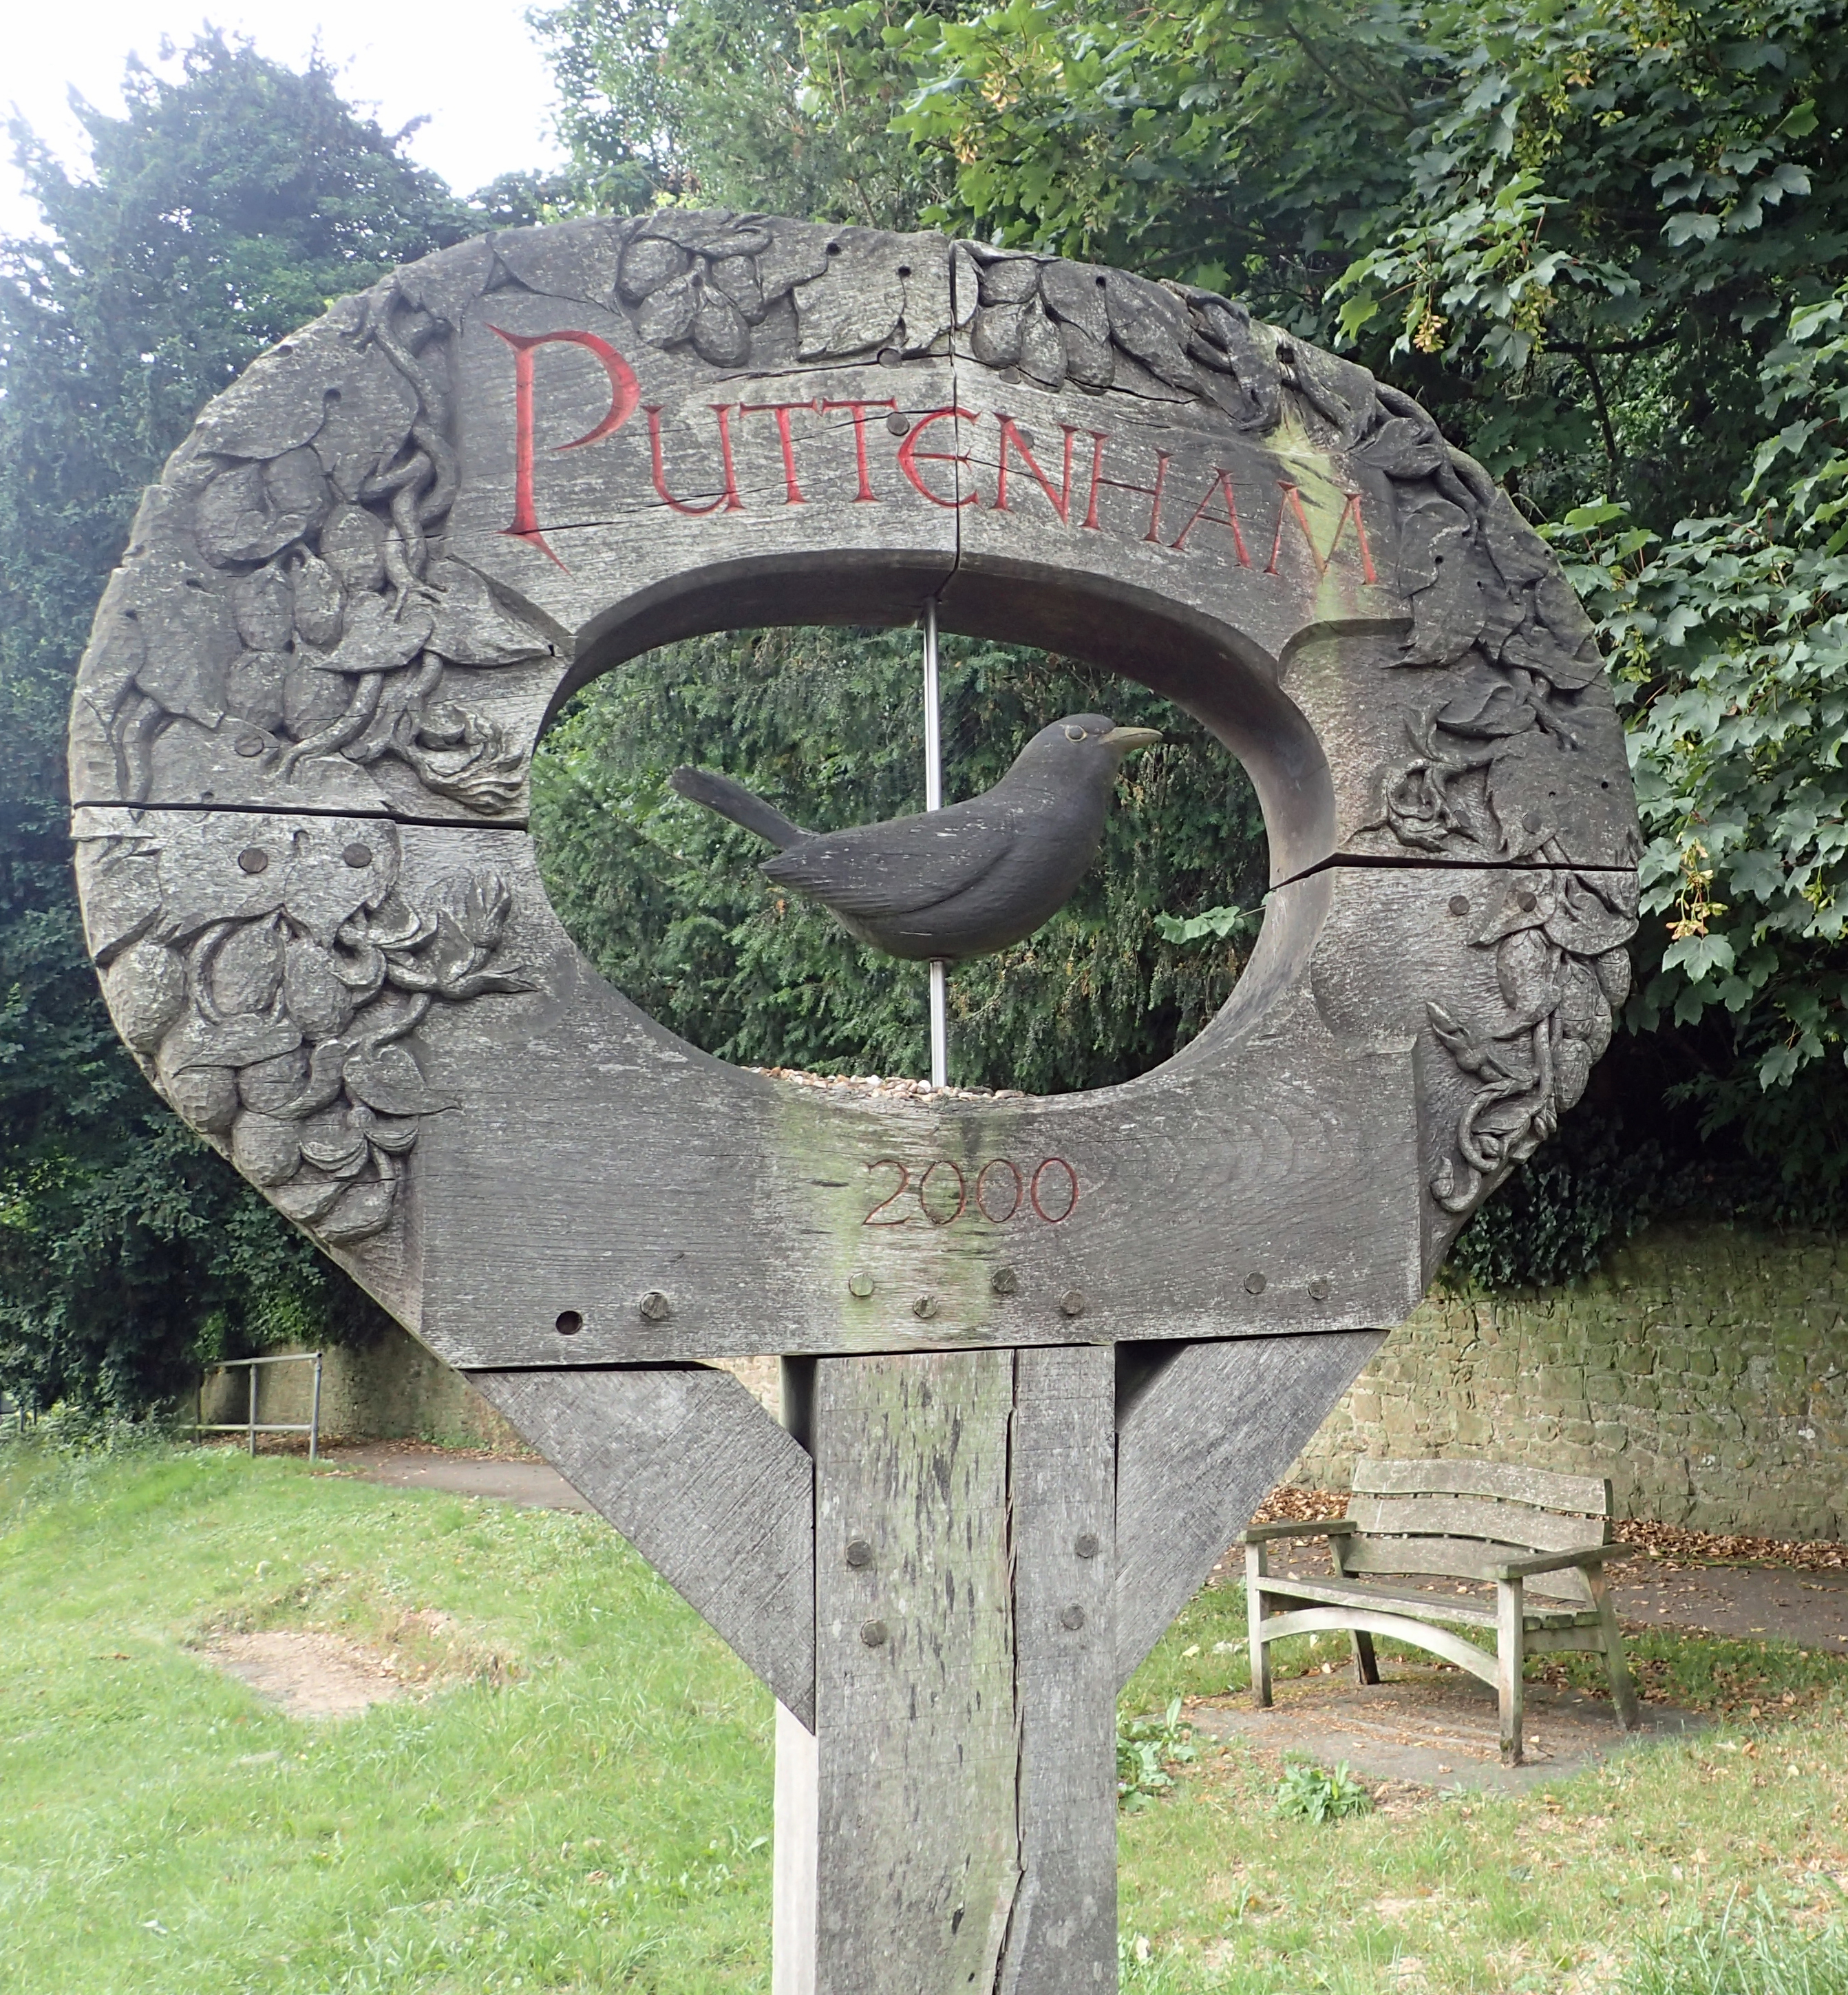 Puttenham village sign, passed on the North Downs Way